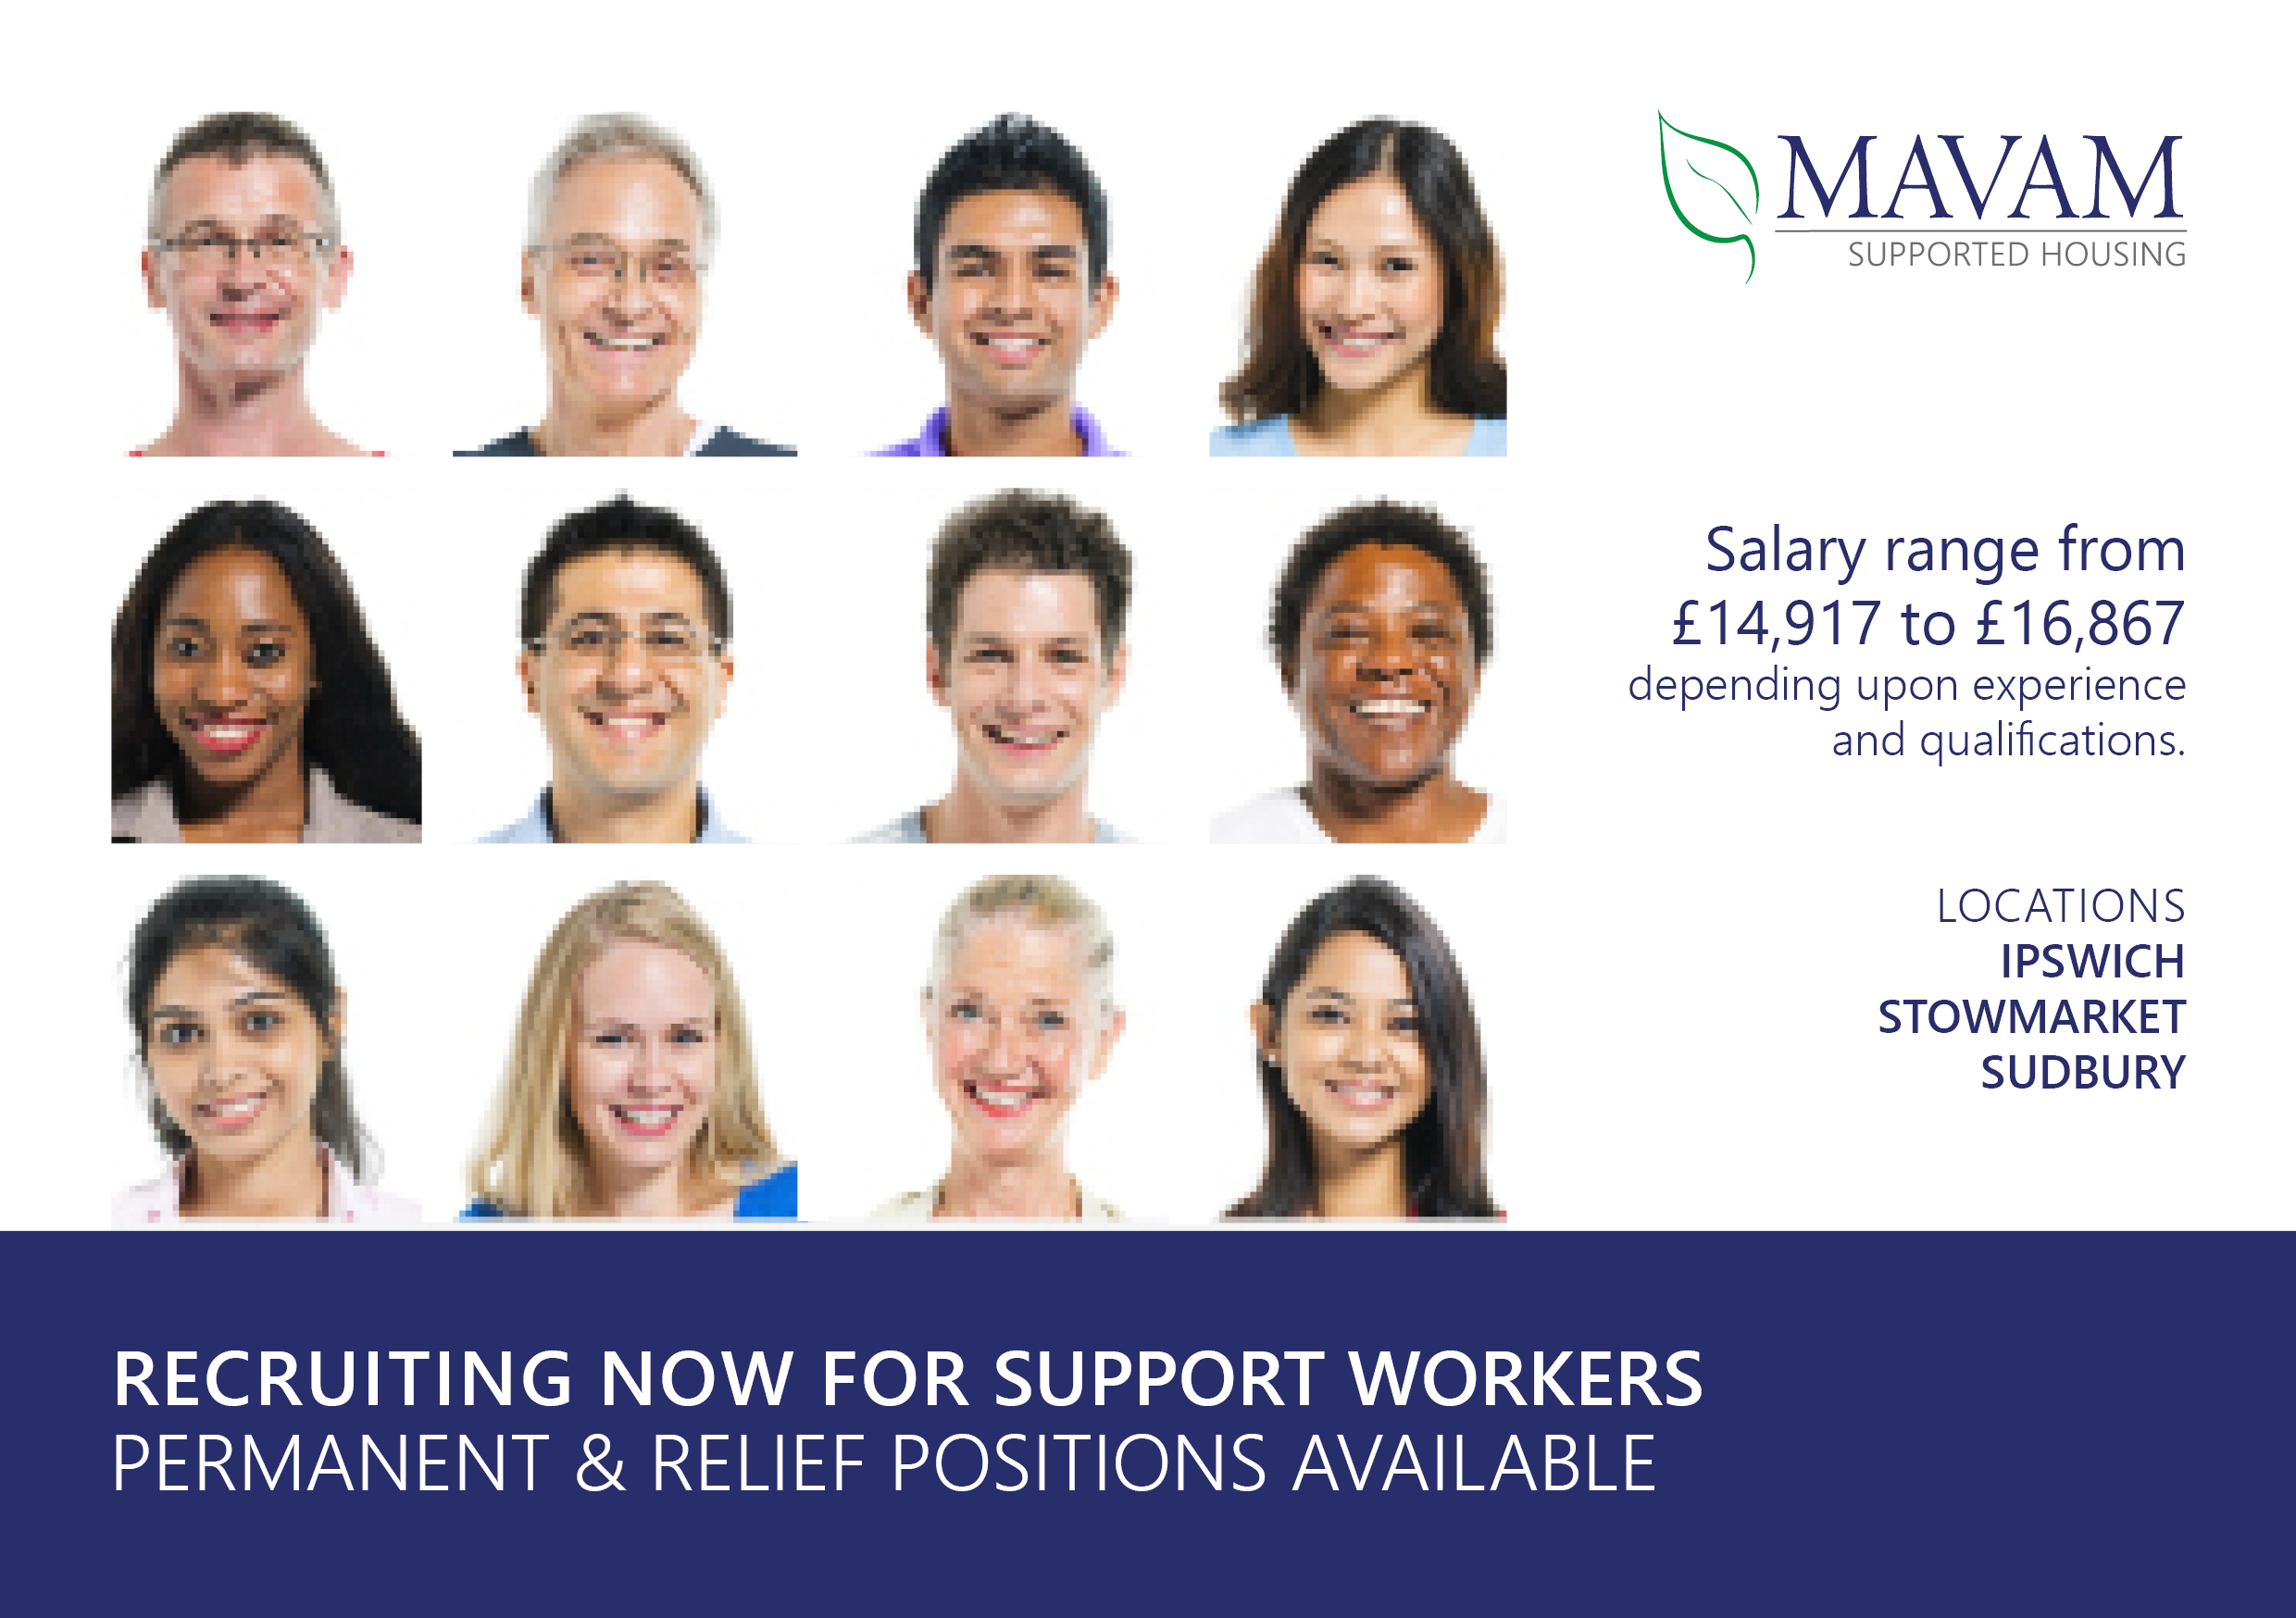 Mavam template for SH job advert